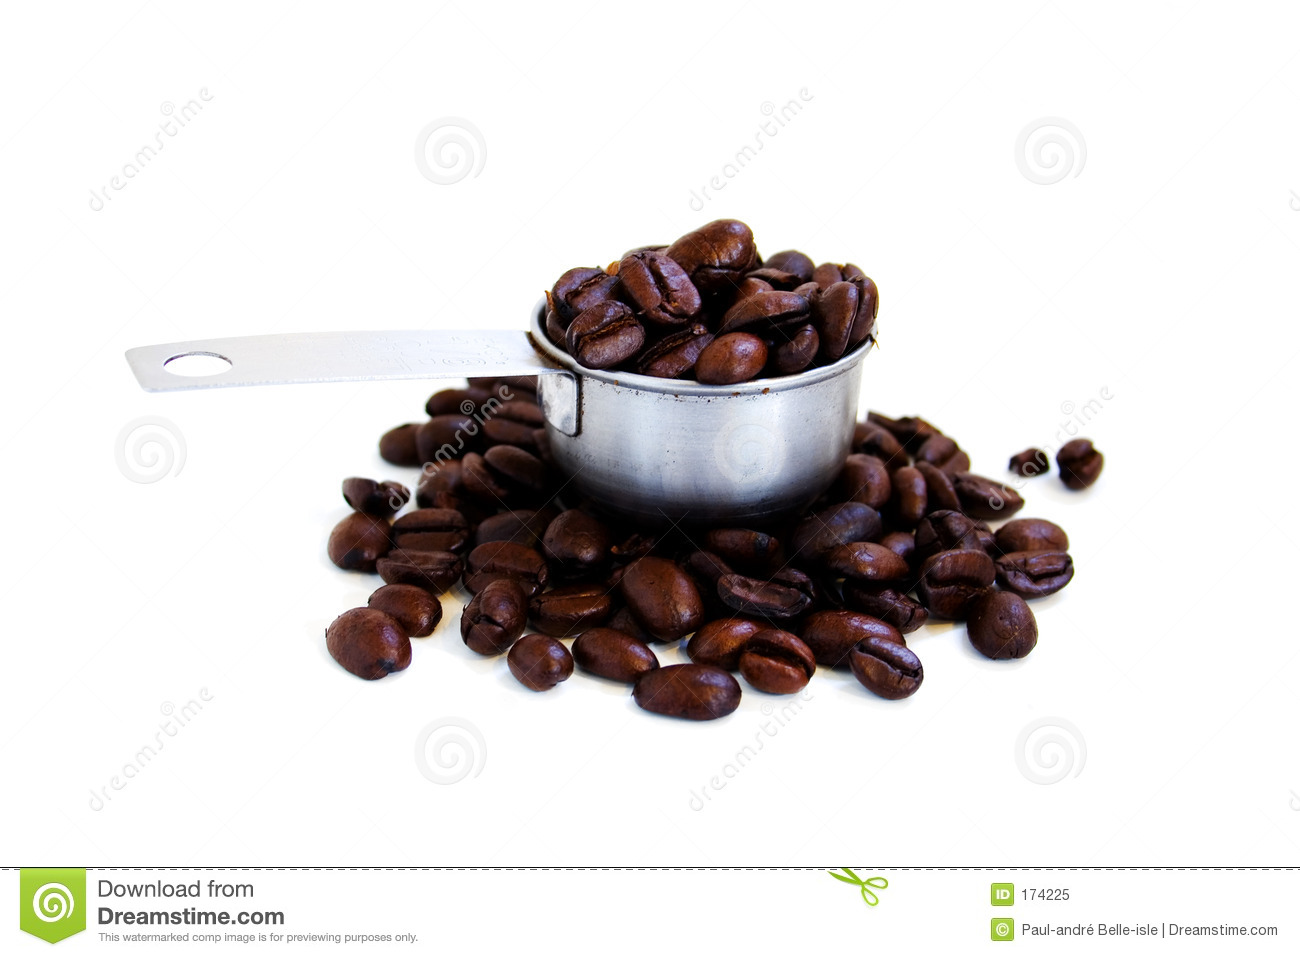 A scoop of coffee beans